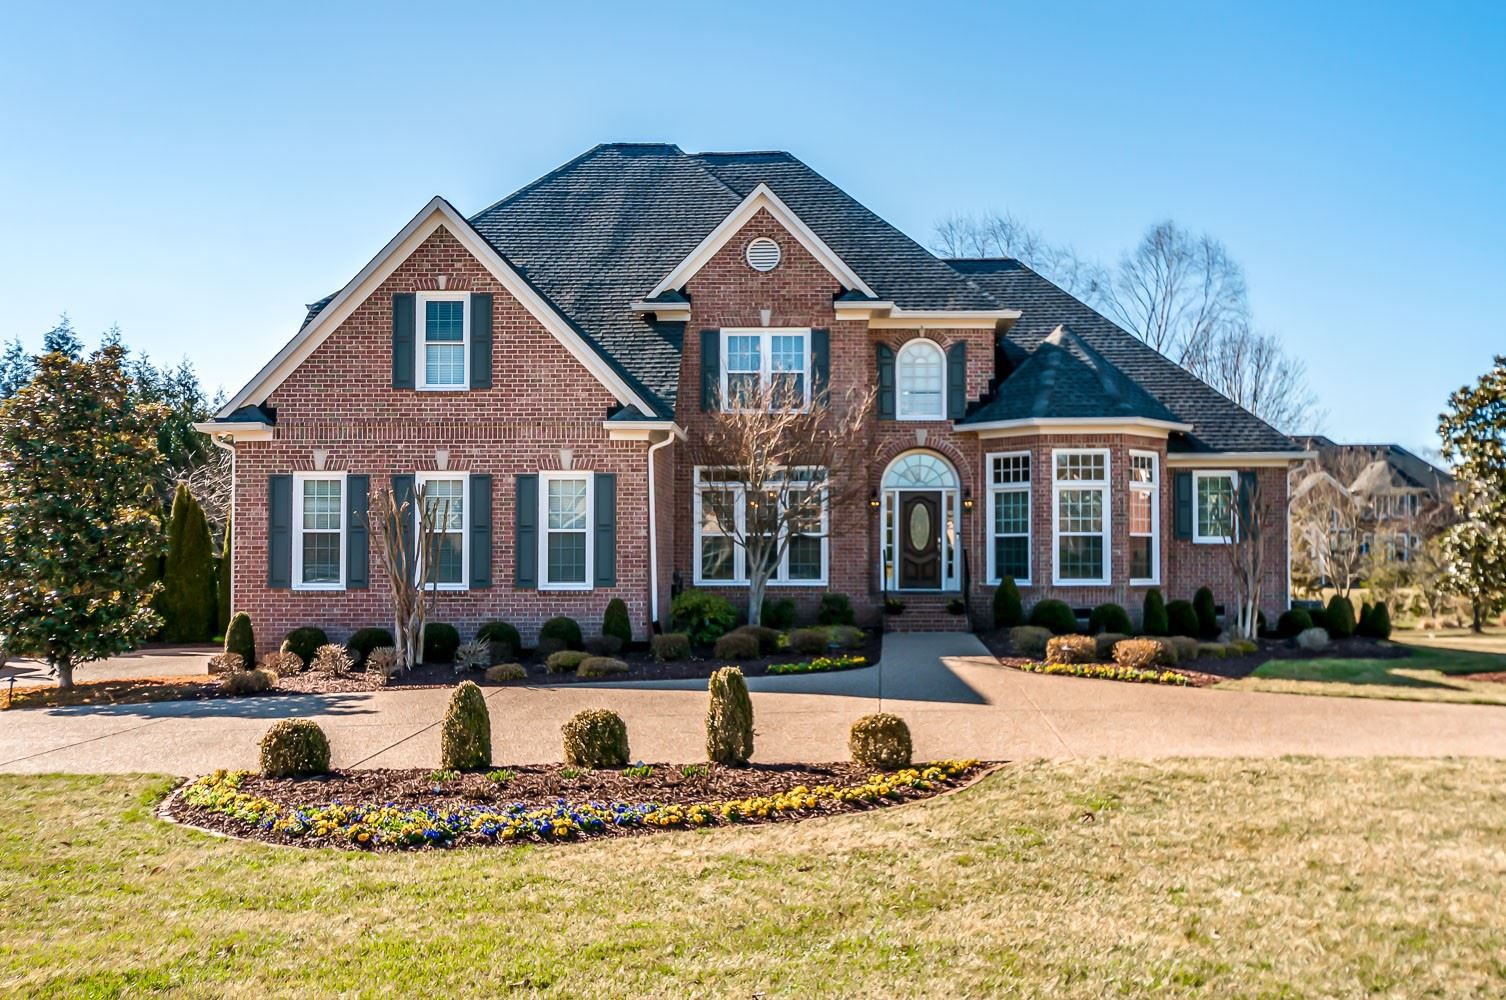 Photo of 1130 Haverhill Dr, Brentwood, TN 37027 (MLS # 2233267)